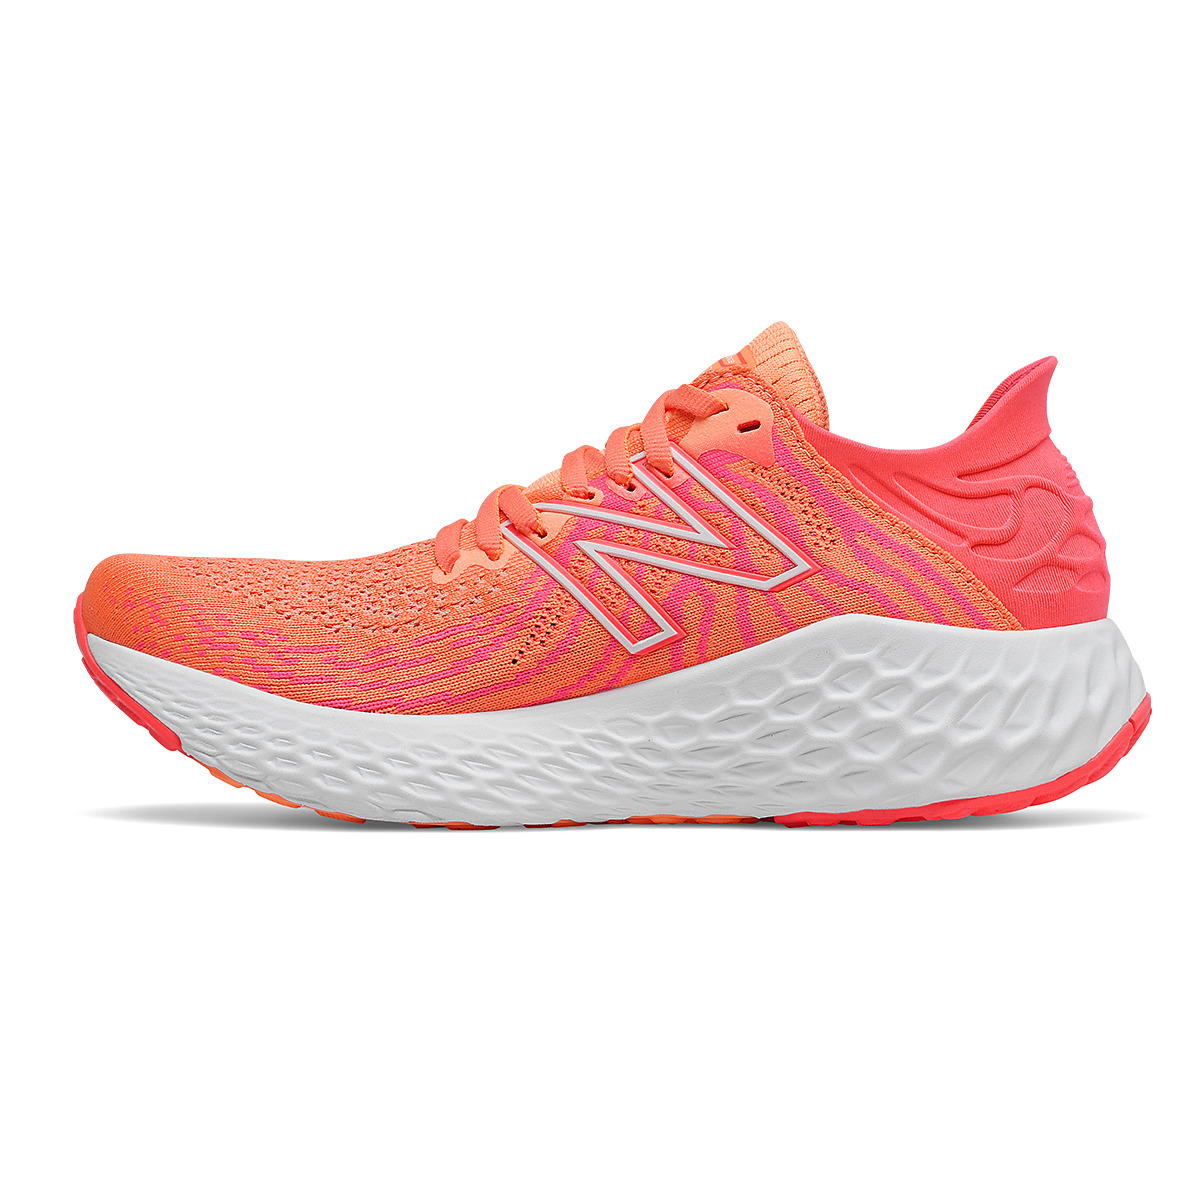 Women's New Balance 1080v11 Running Shoe - Color: Citrus Punch/Vivid Coral - Size: 5 - Width: Narrow, Citrus Punch/Vivid Coral, large, image 2